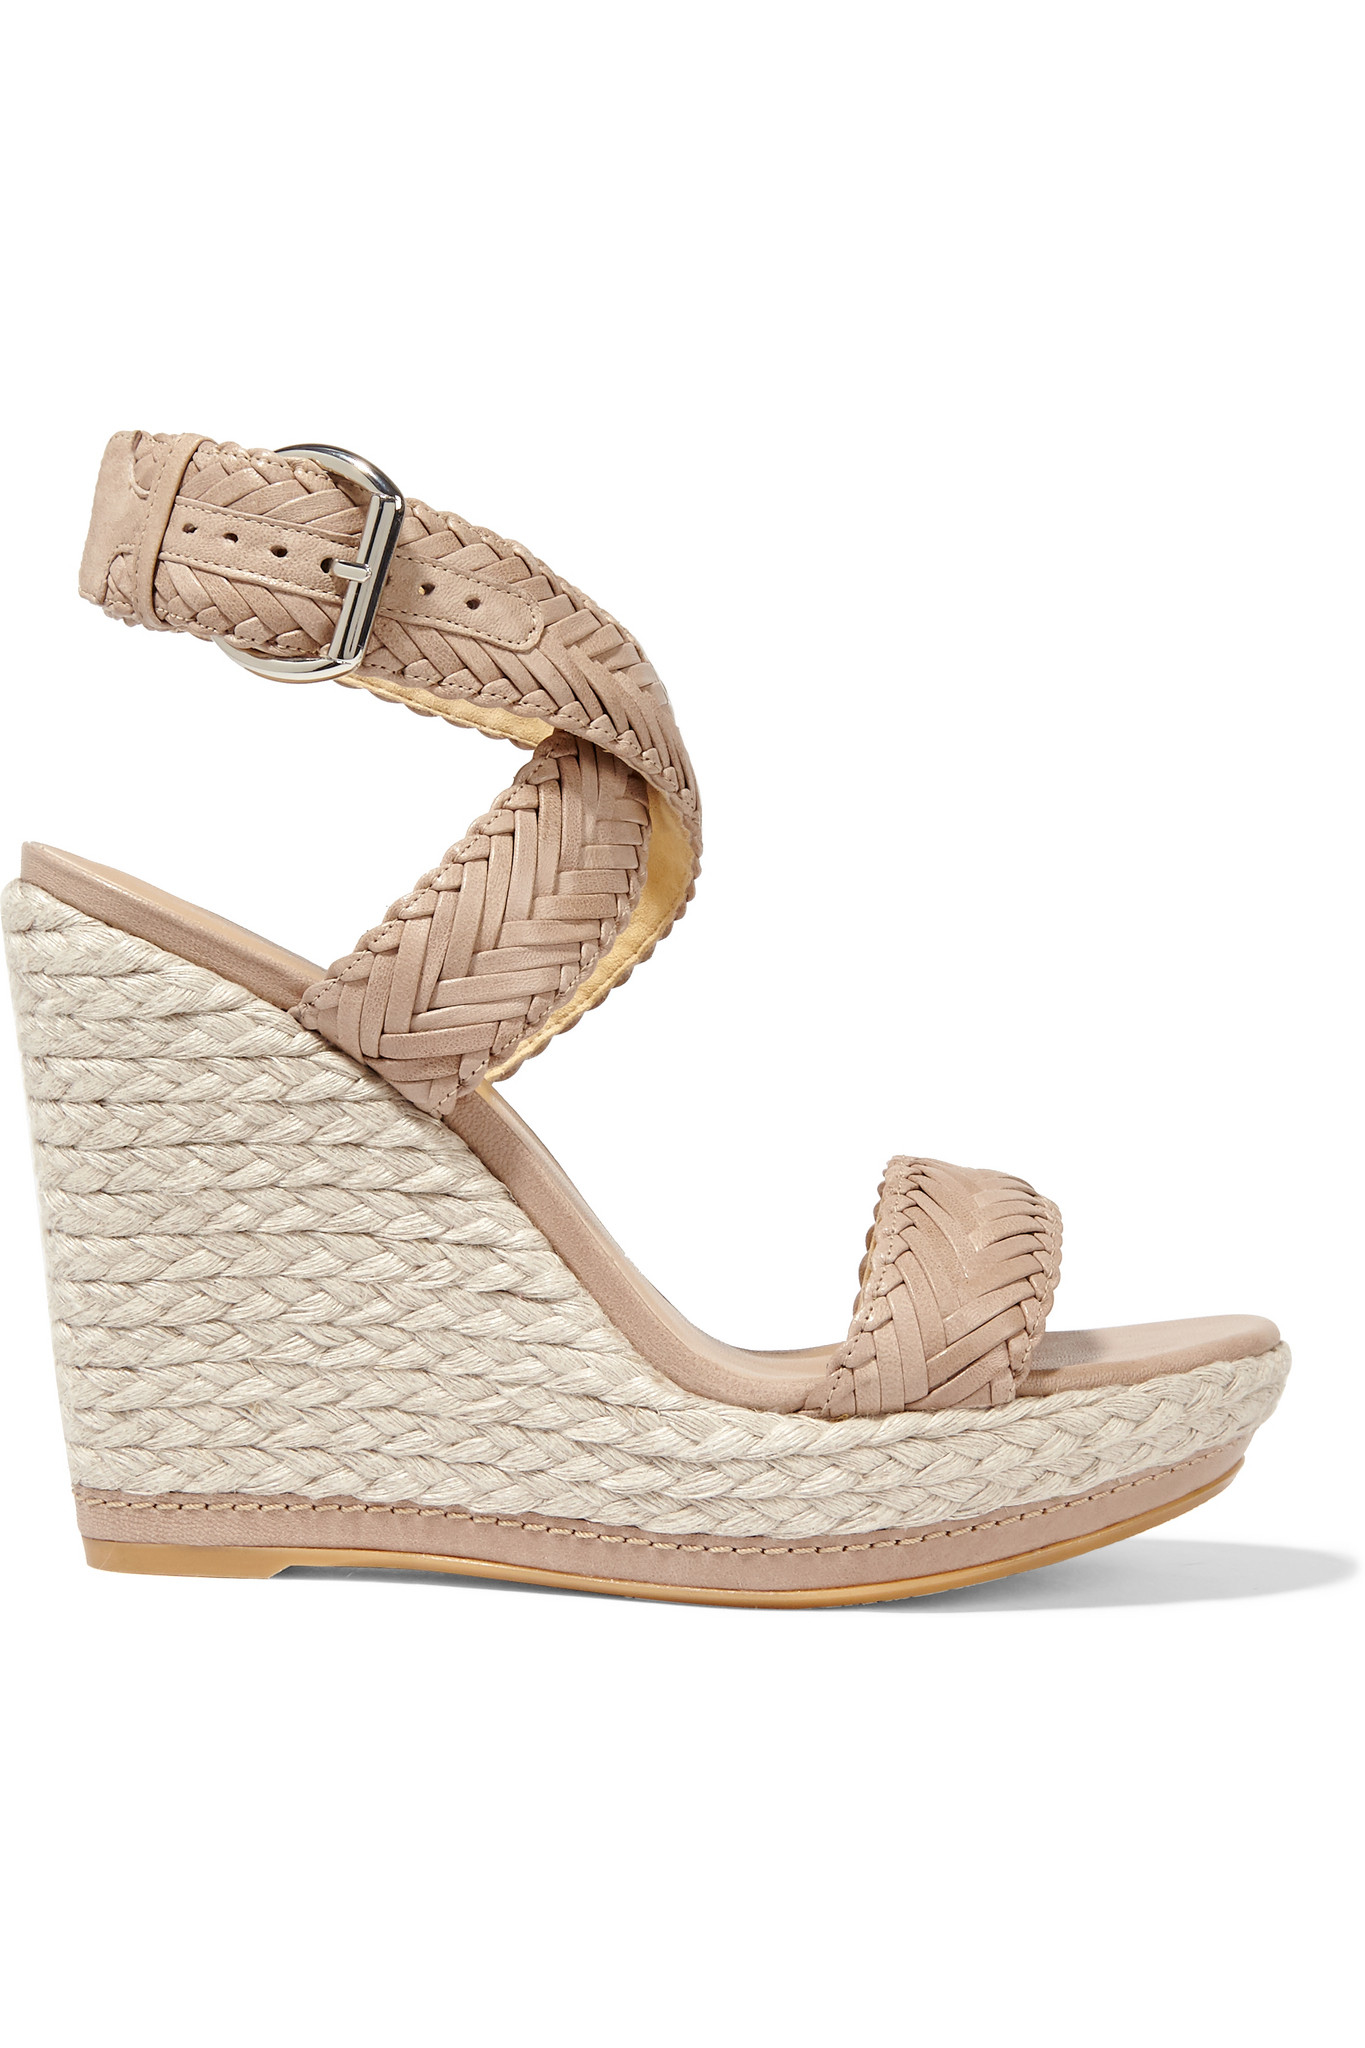 Lyst Stuart Weitzman Elixir Braided Leather Espadrille